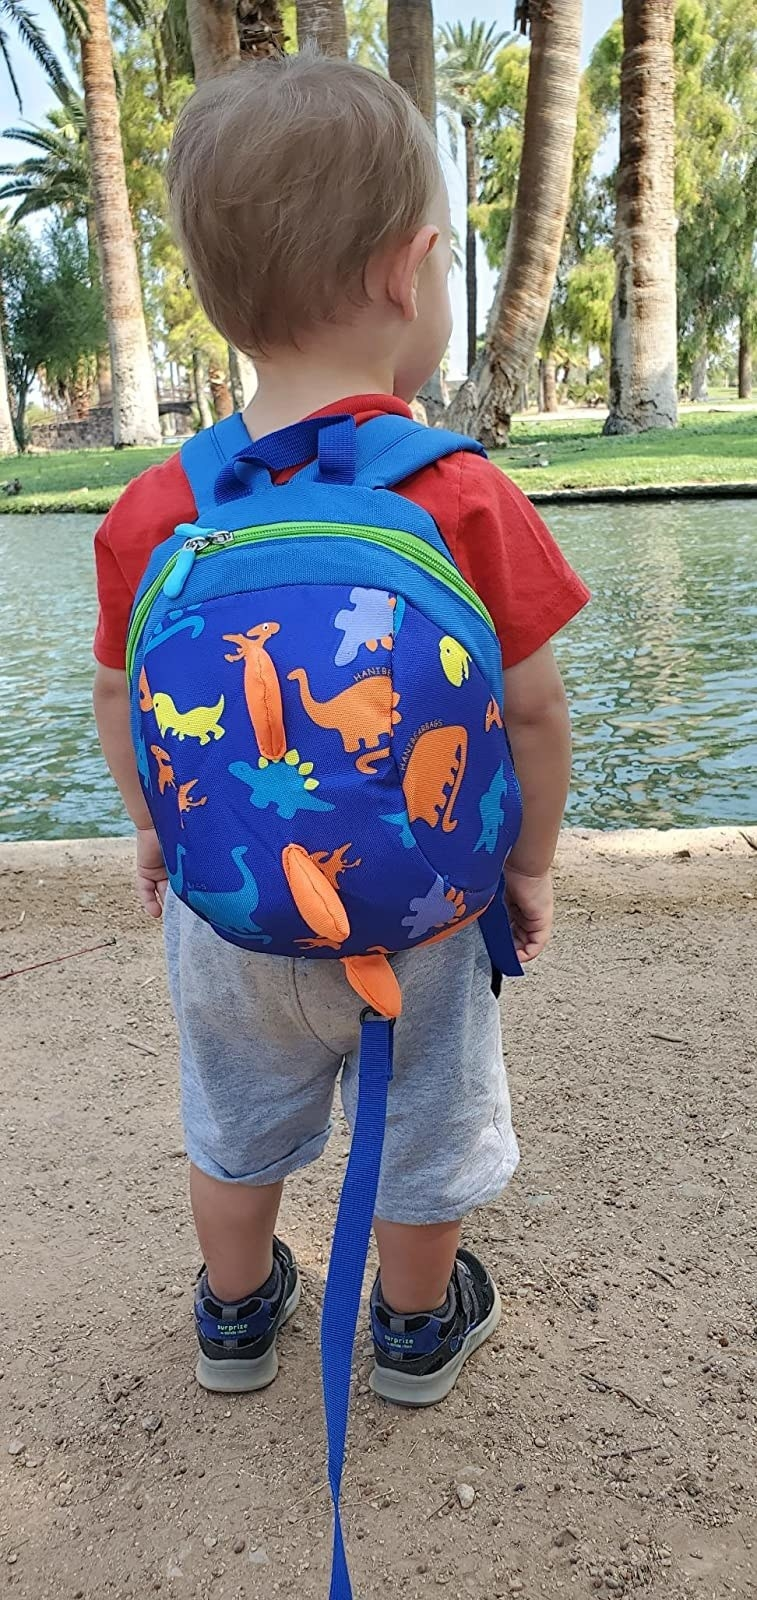 Reviewer's photo showing a child wearing the backpack in blue with a leash